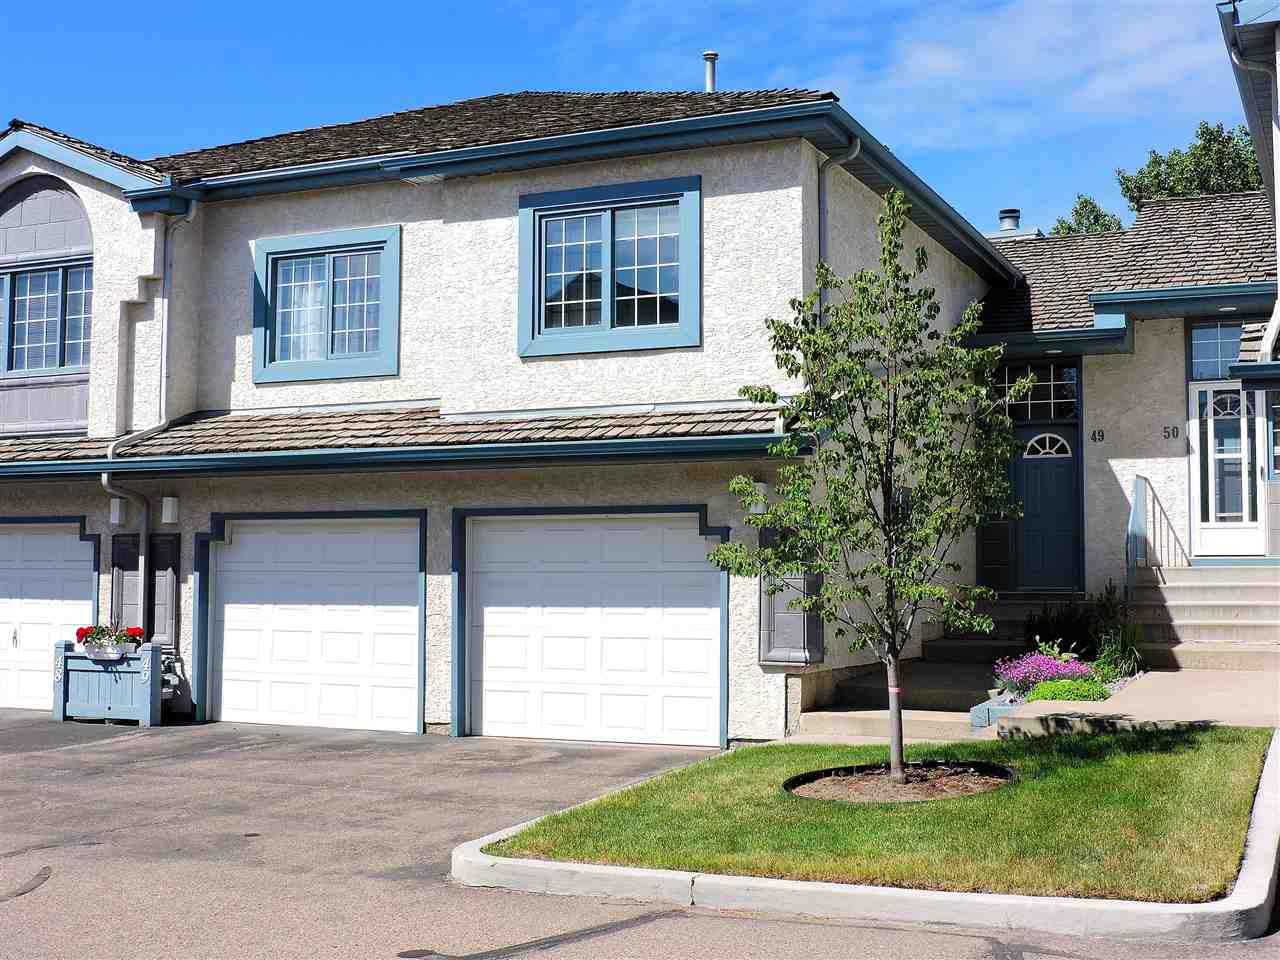 Main Photo: 49 1130 FALCONER Road in Edmonton: Zone 14 Townhouse for sale : MLS(r) # E4070045